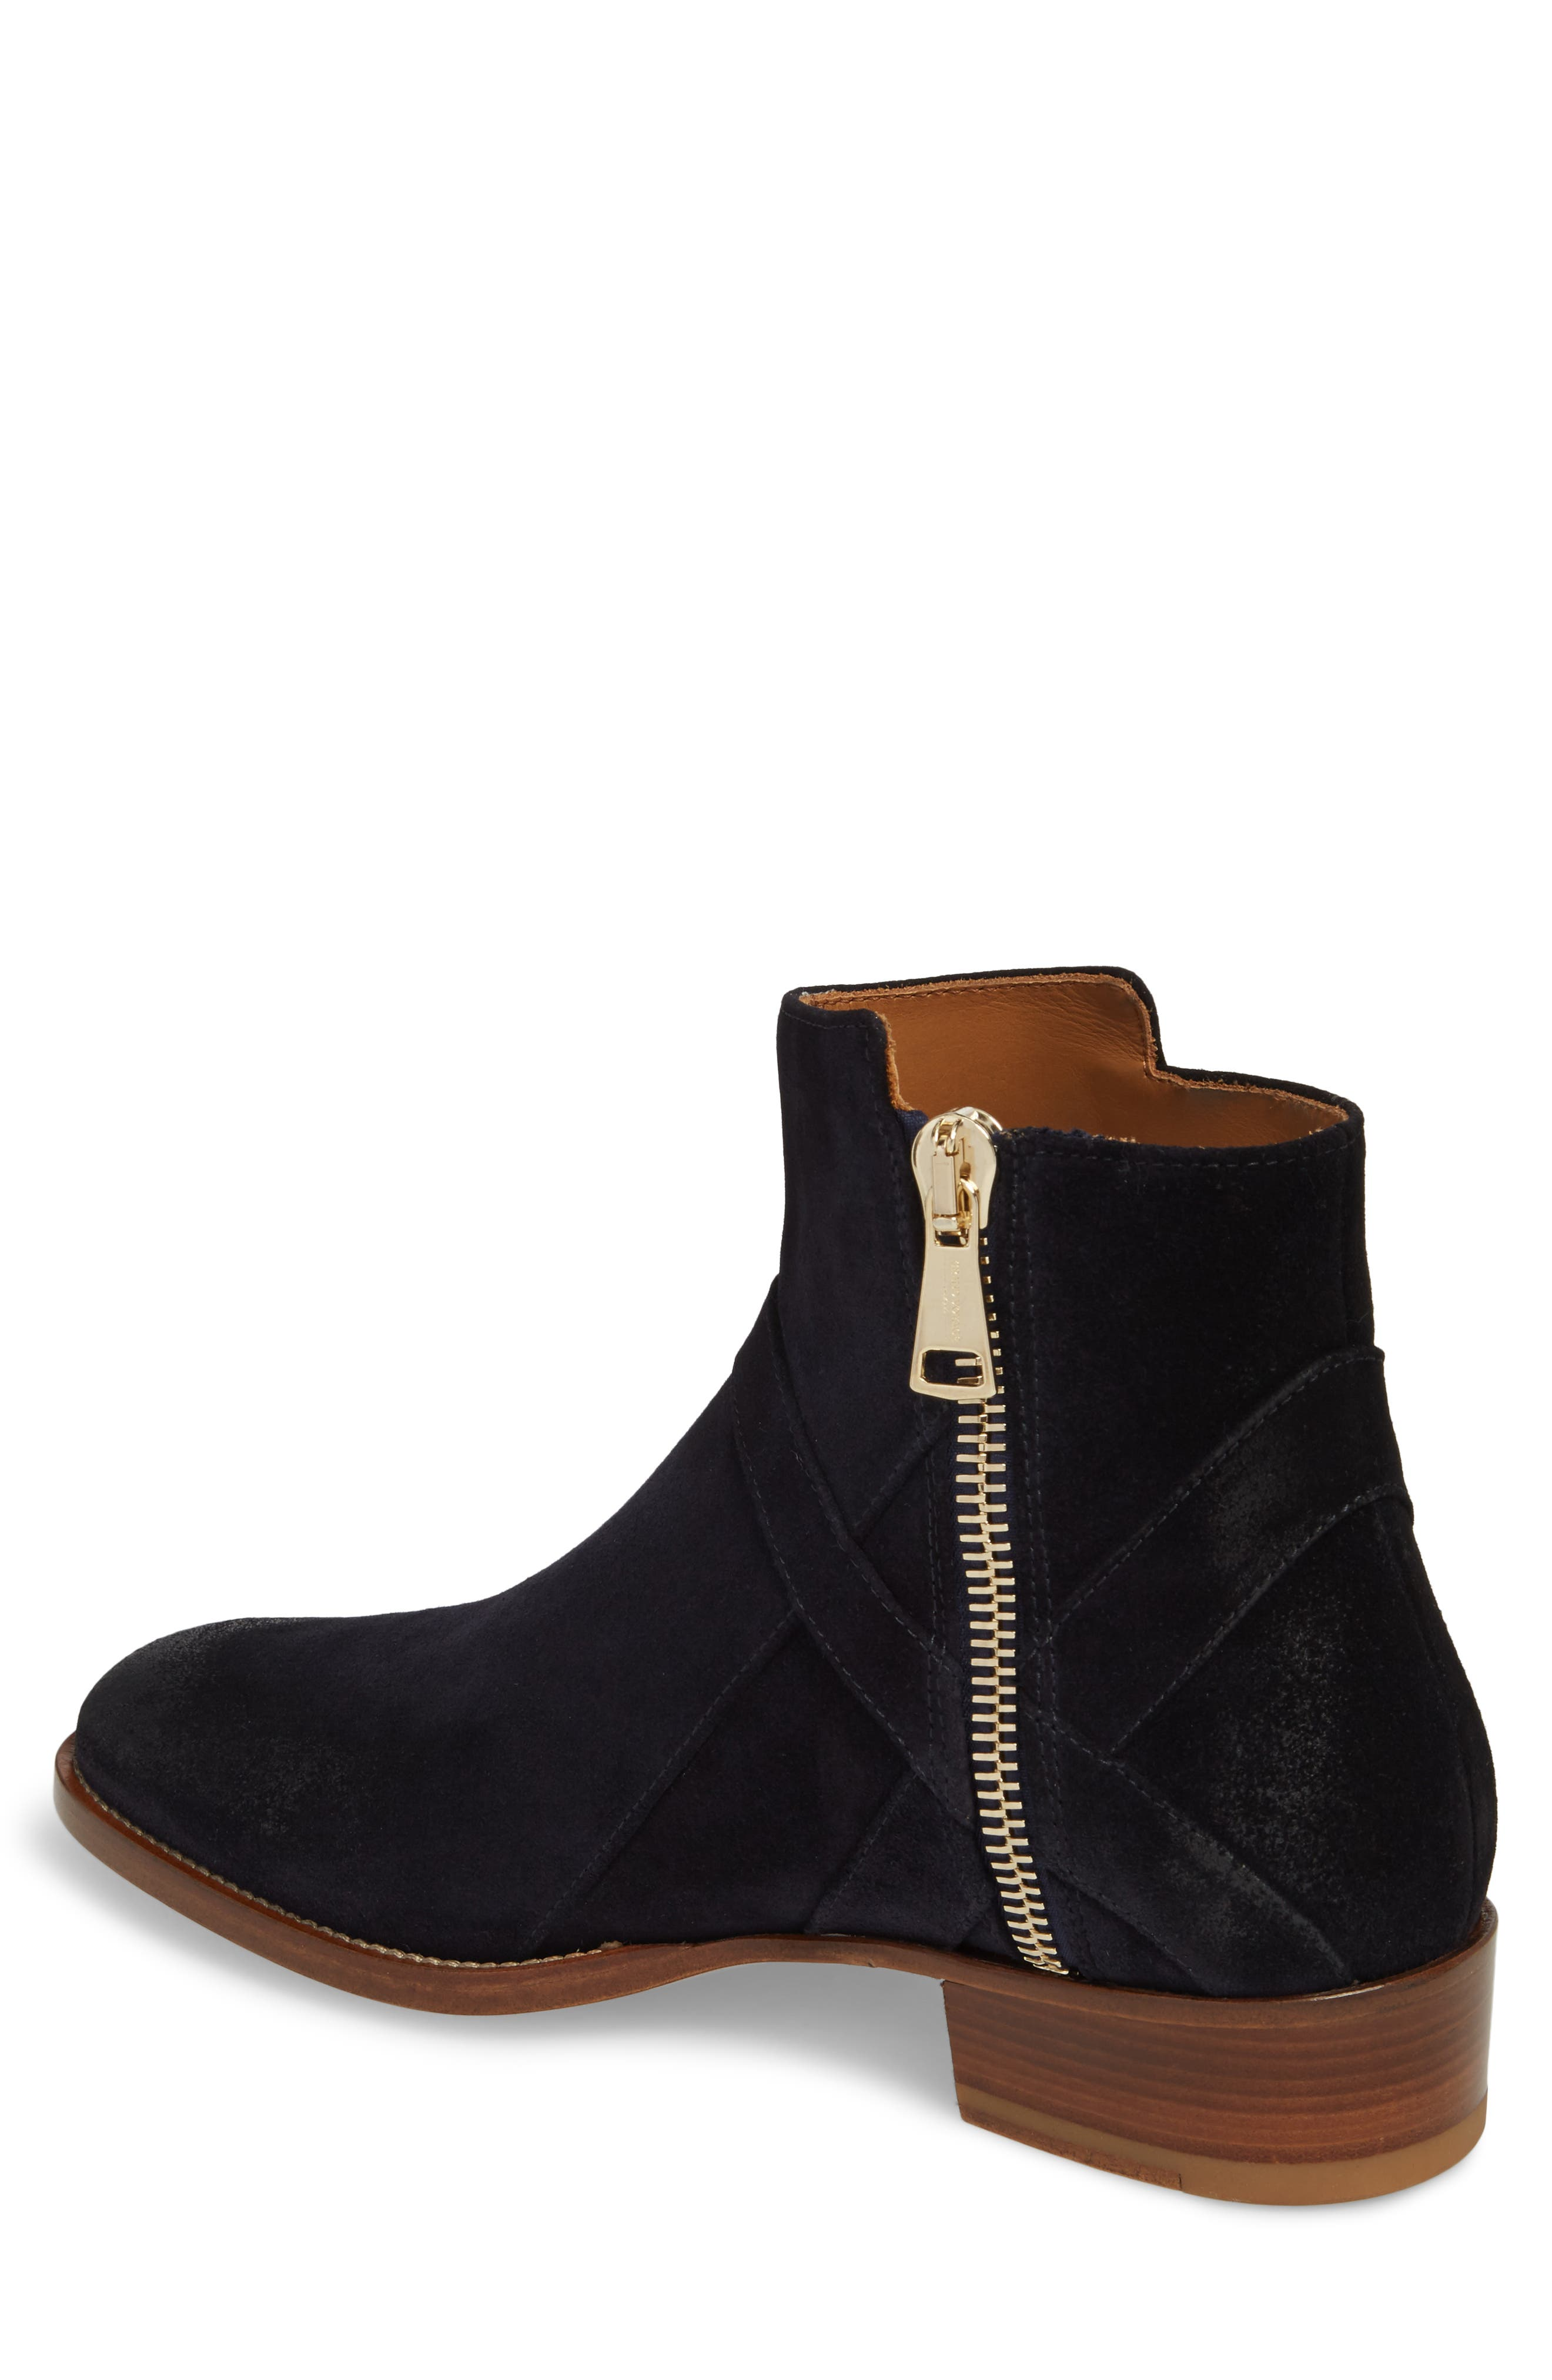 Bowie Zip Boot,                             Alternate thumbnail 2, color,                             Navy Suede